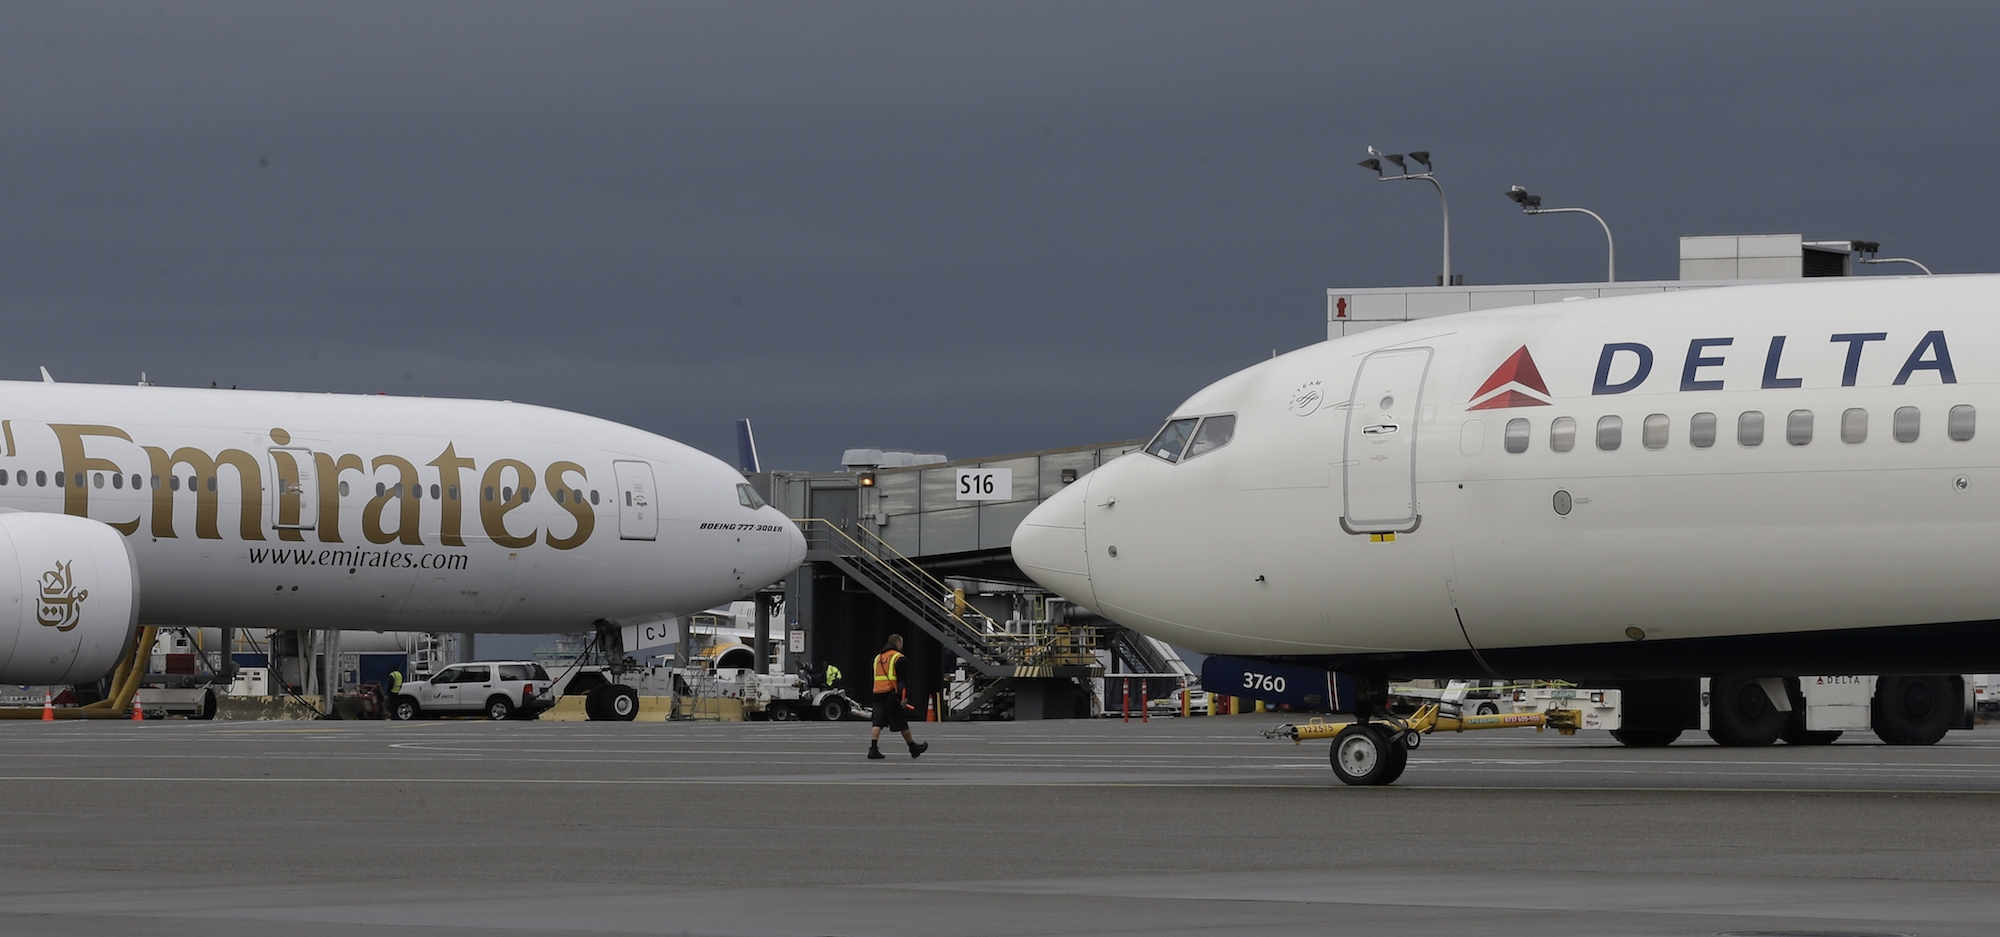 Emirates and Delta airplanes